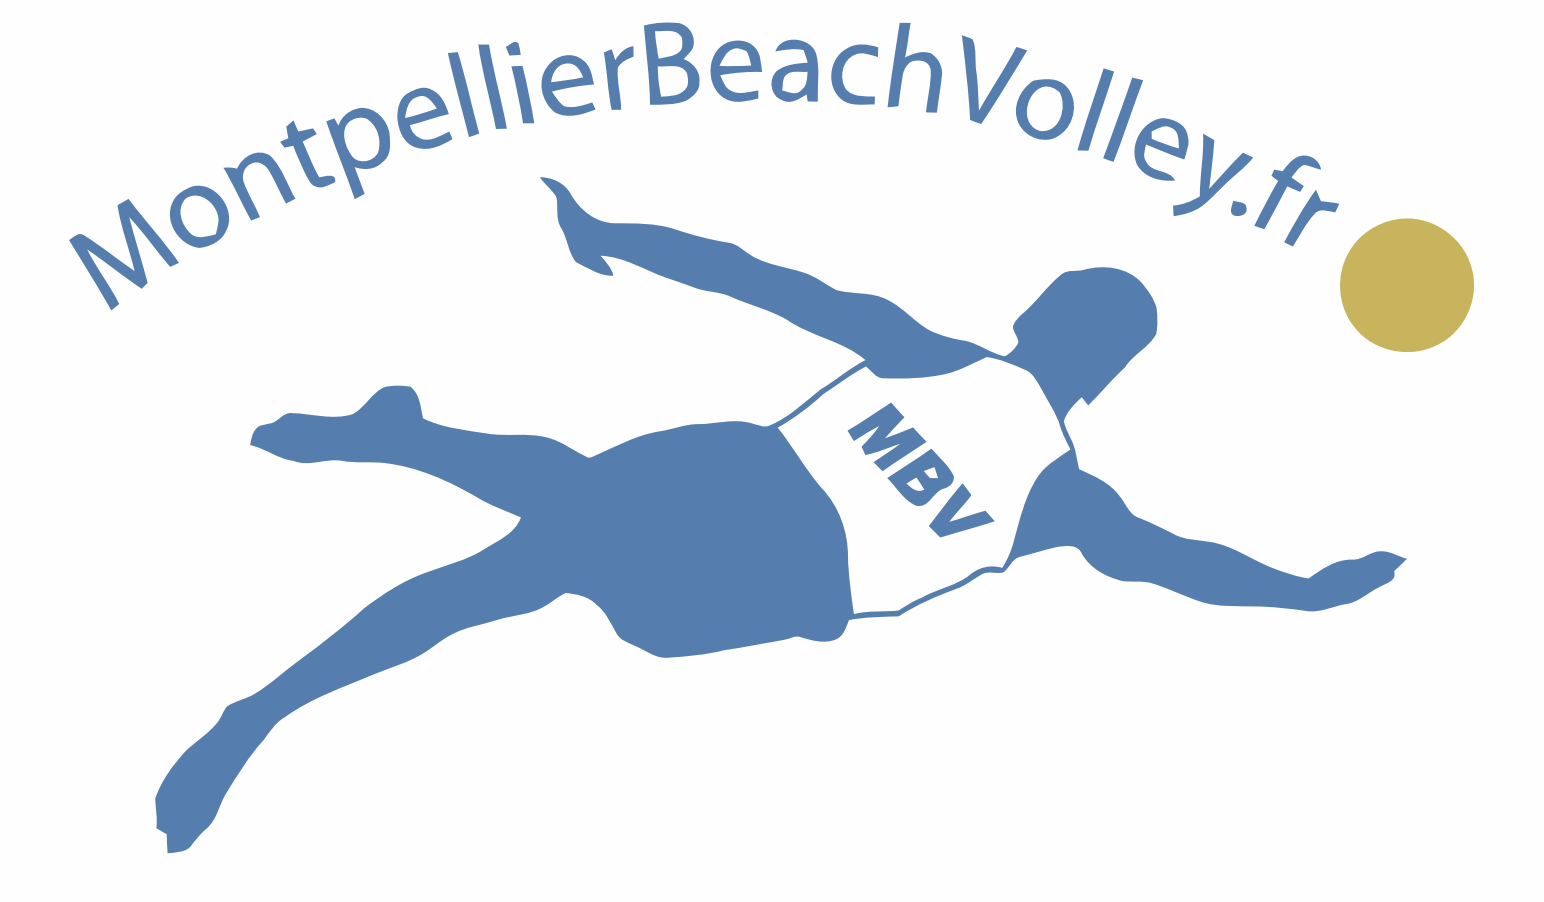 Montpellier Beach Volley